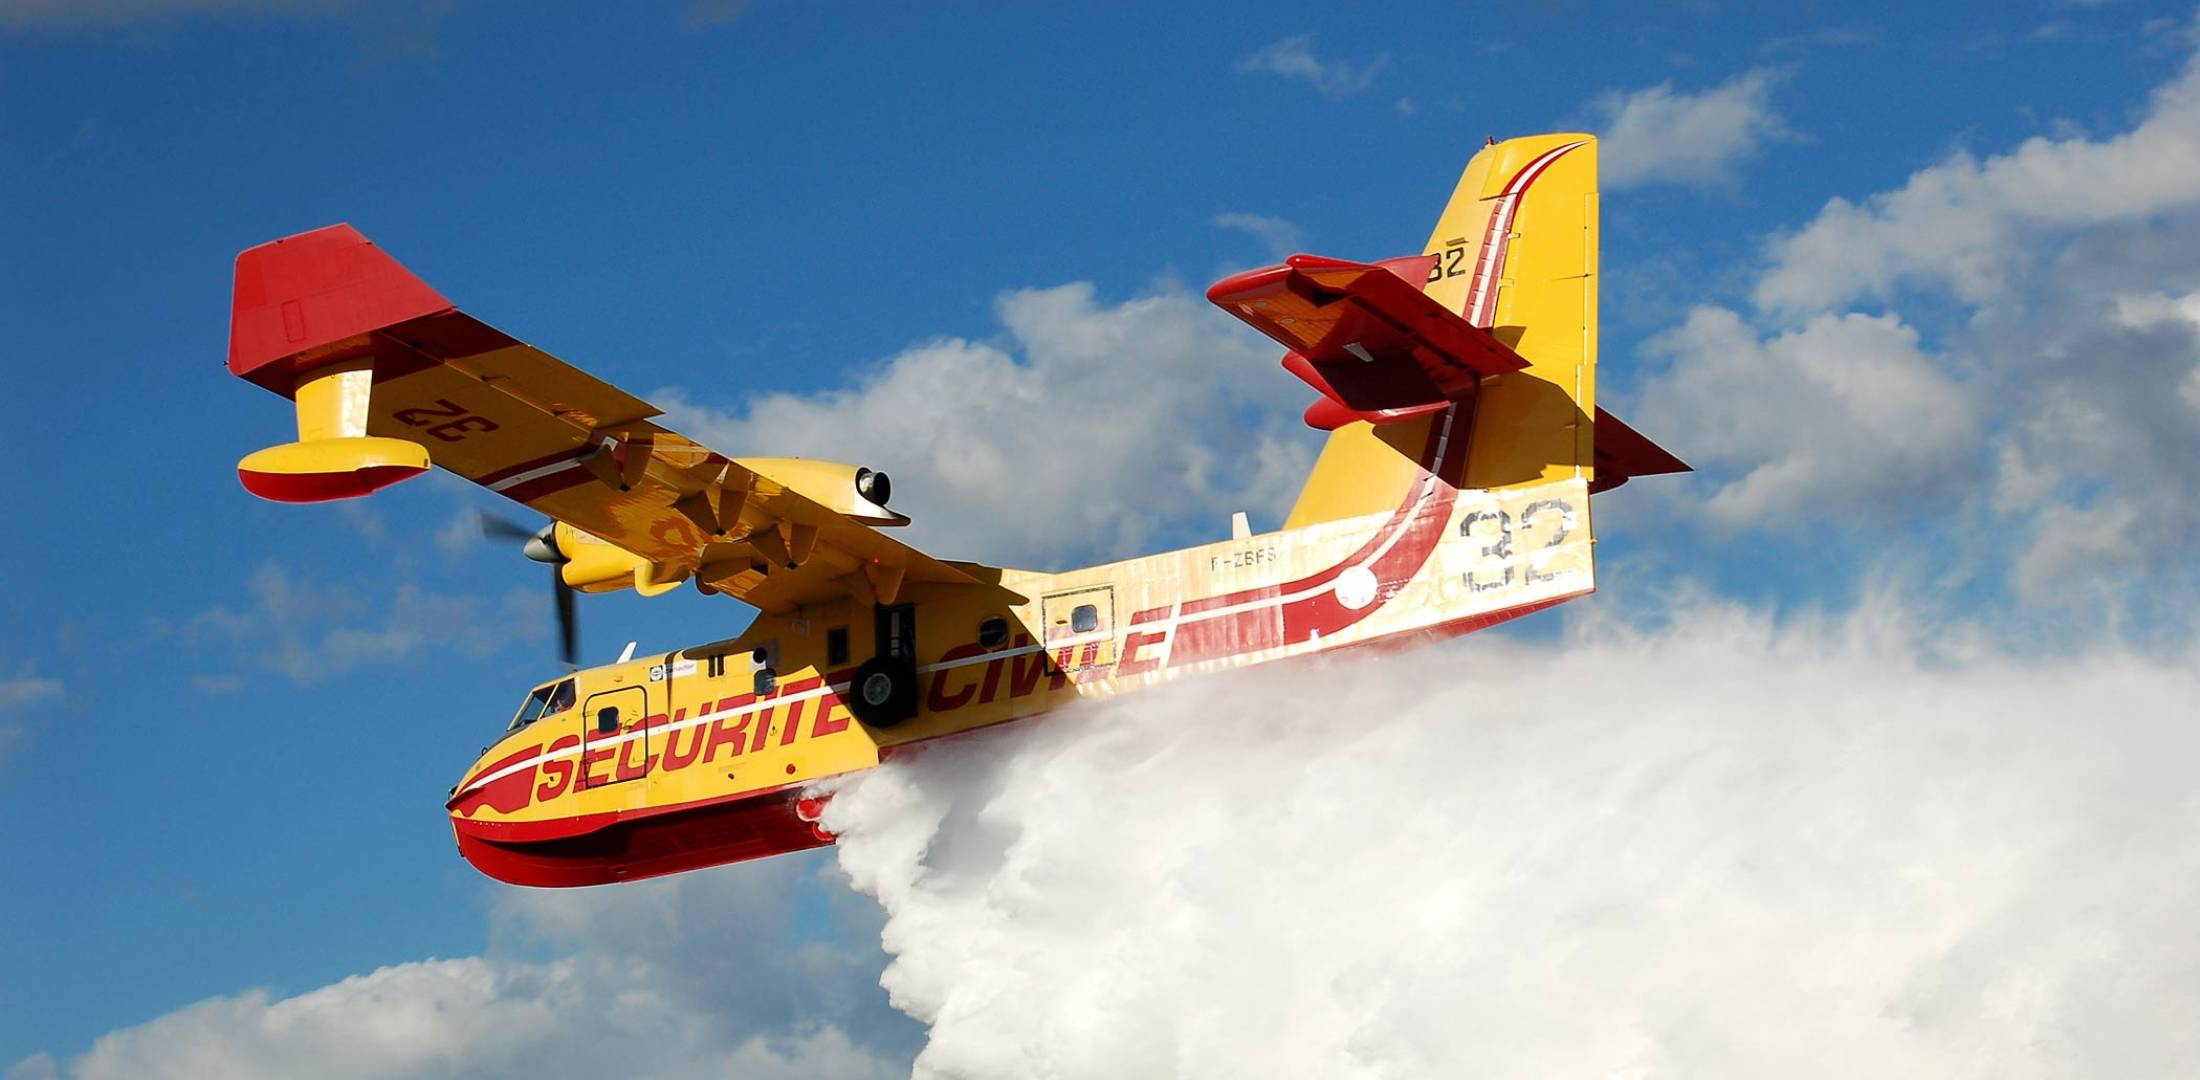 Having acquired the production and support rights to Canadair's CL series of water bombers, Viking Air is systematically upgrading piston versions to turbine power, with other improvements.